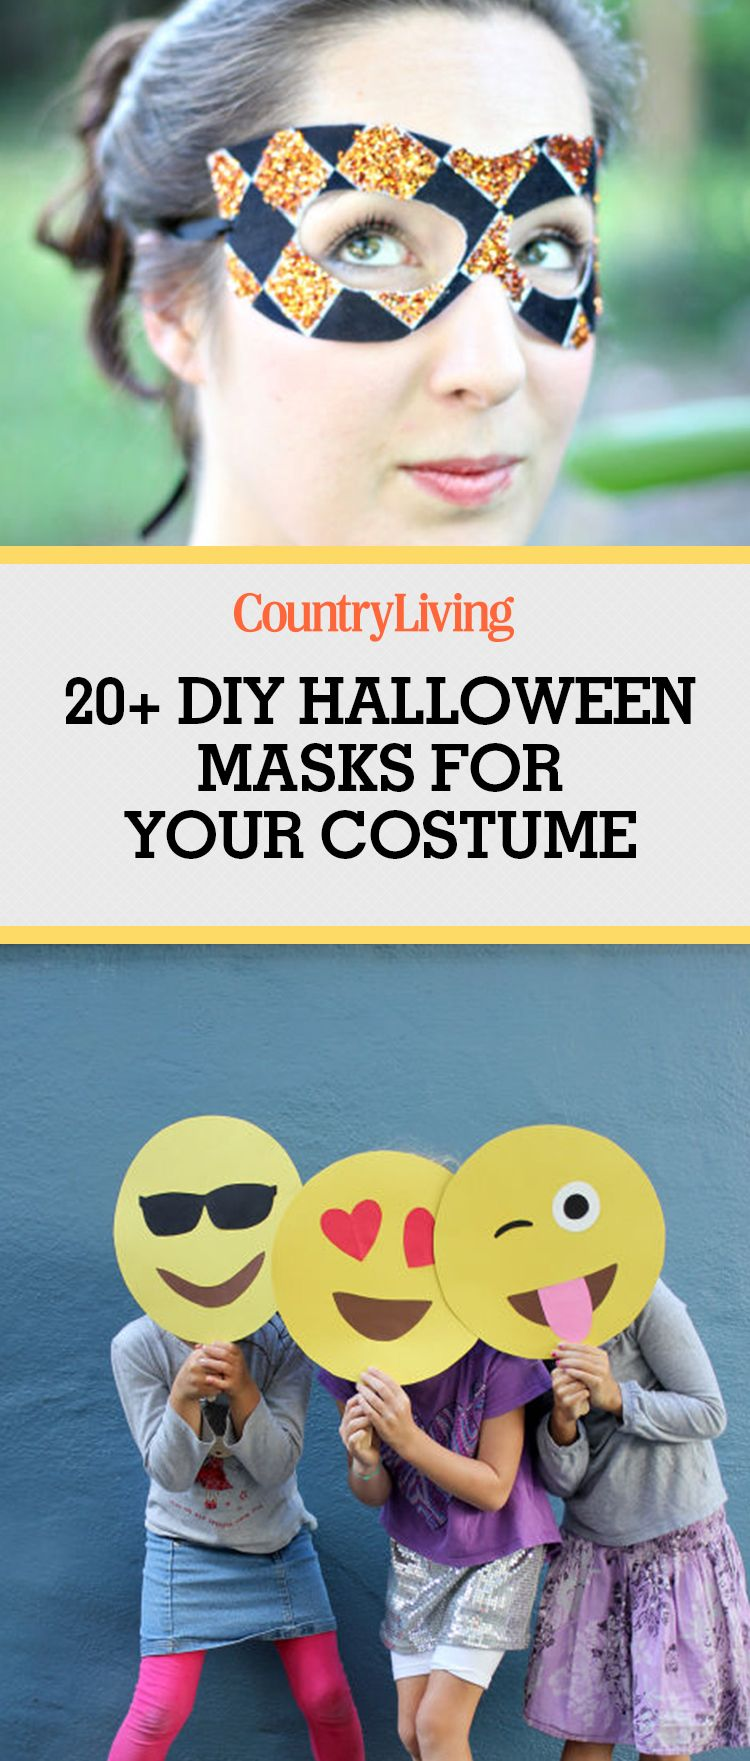 Have The Best Get Up Without Spending A Fortune These Diy Halloween Masks Can Help Complete Any Costume